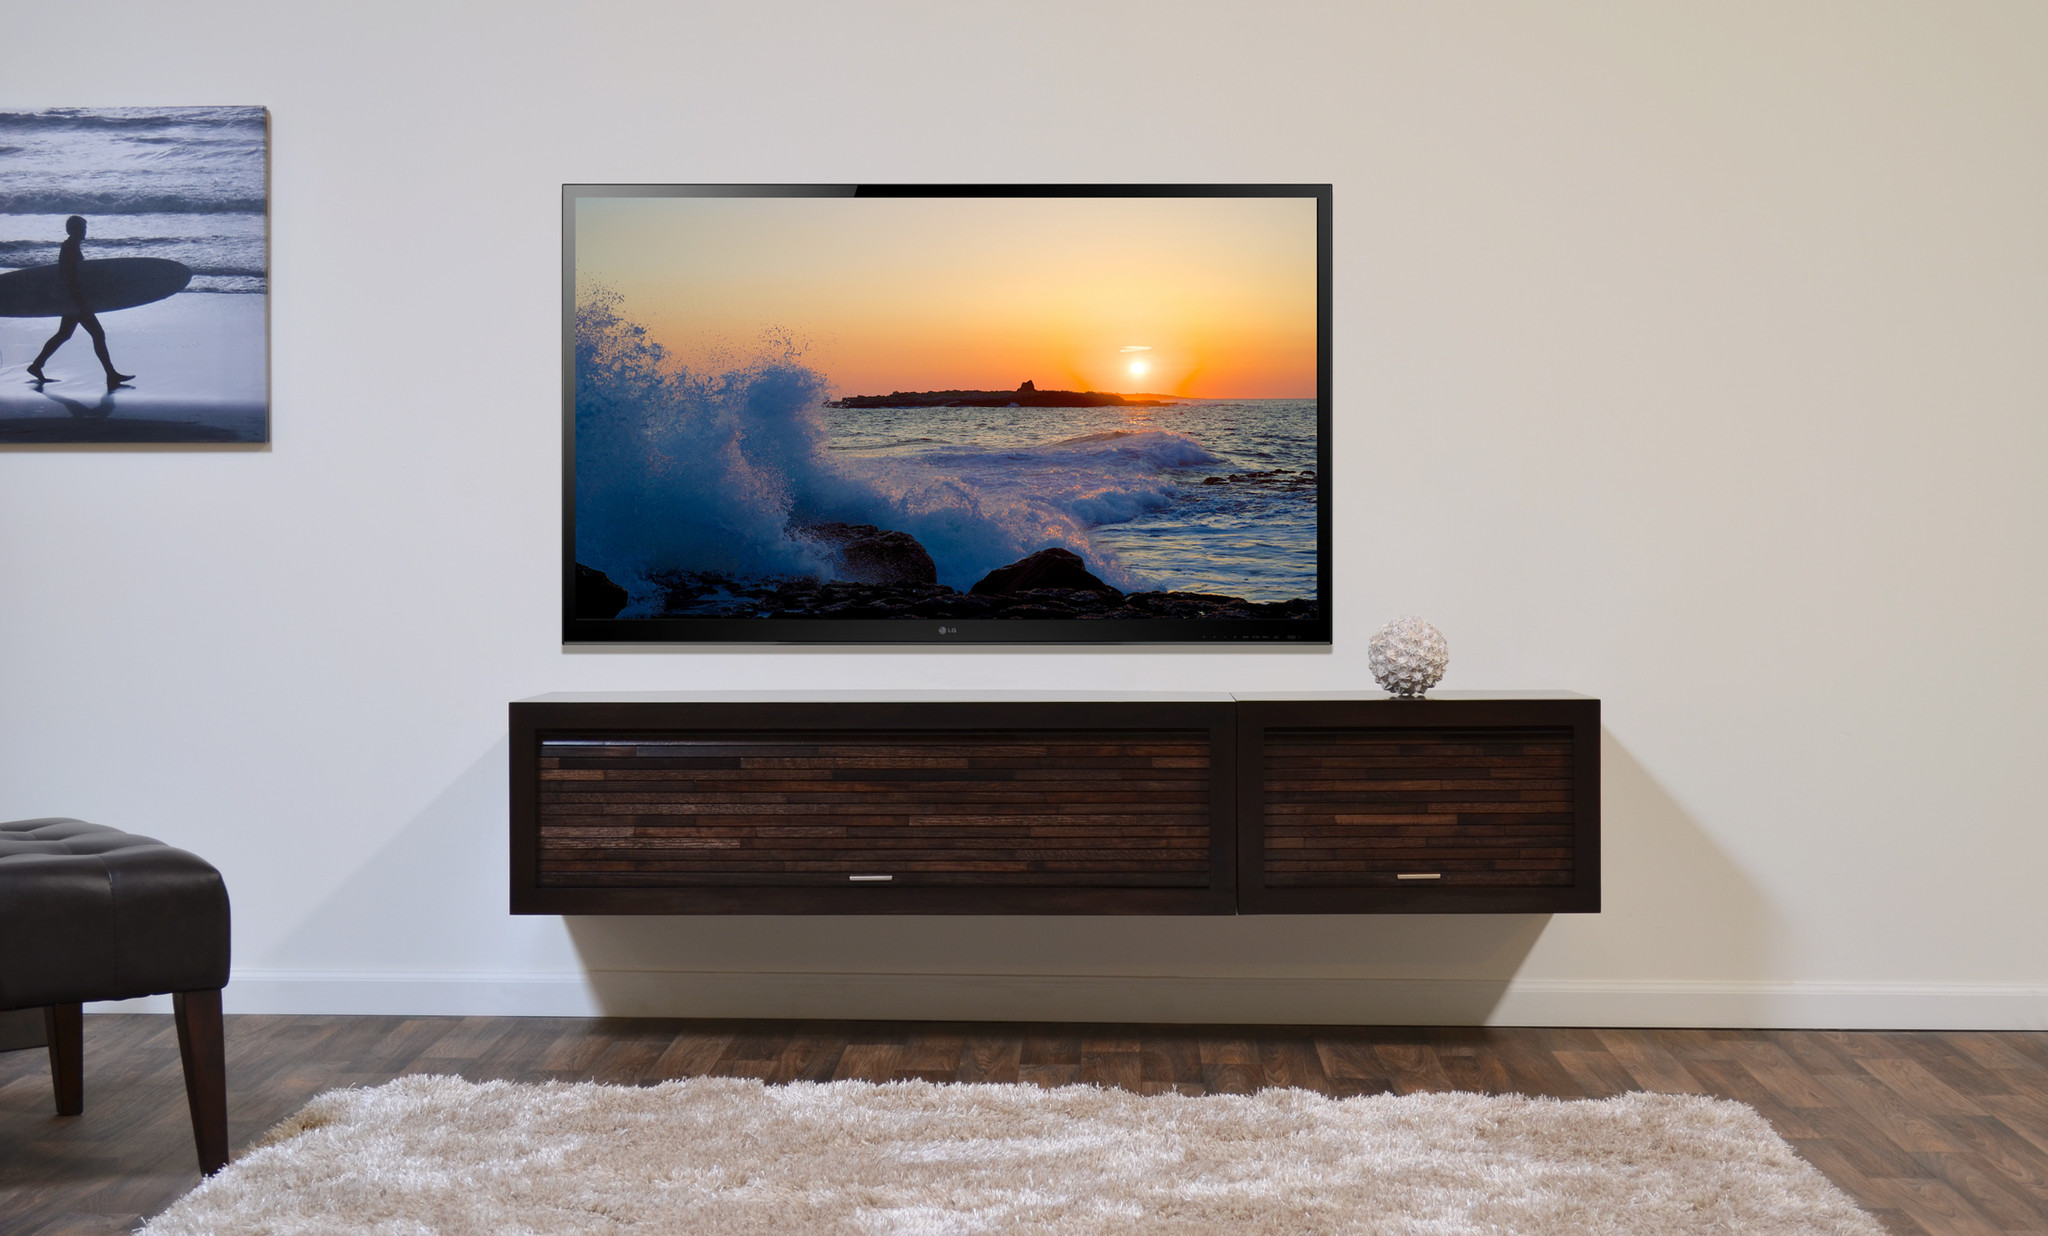 Floating Tv Stand Floating Media Console: A Way To Display Your Tv With